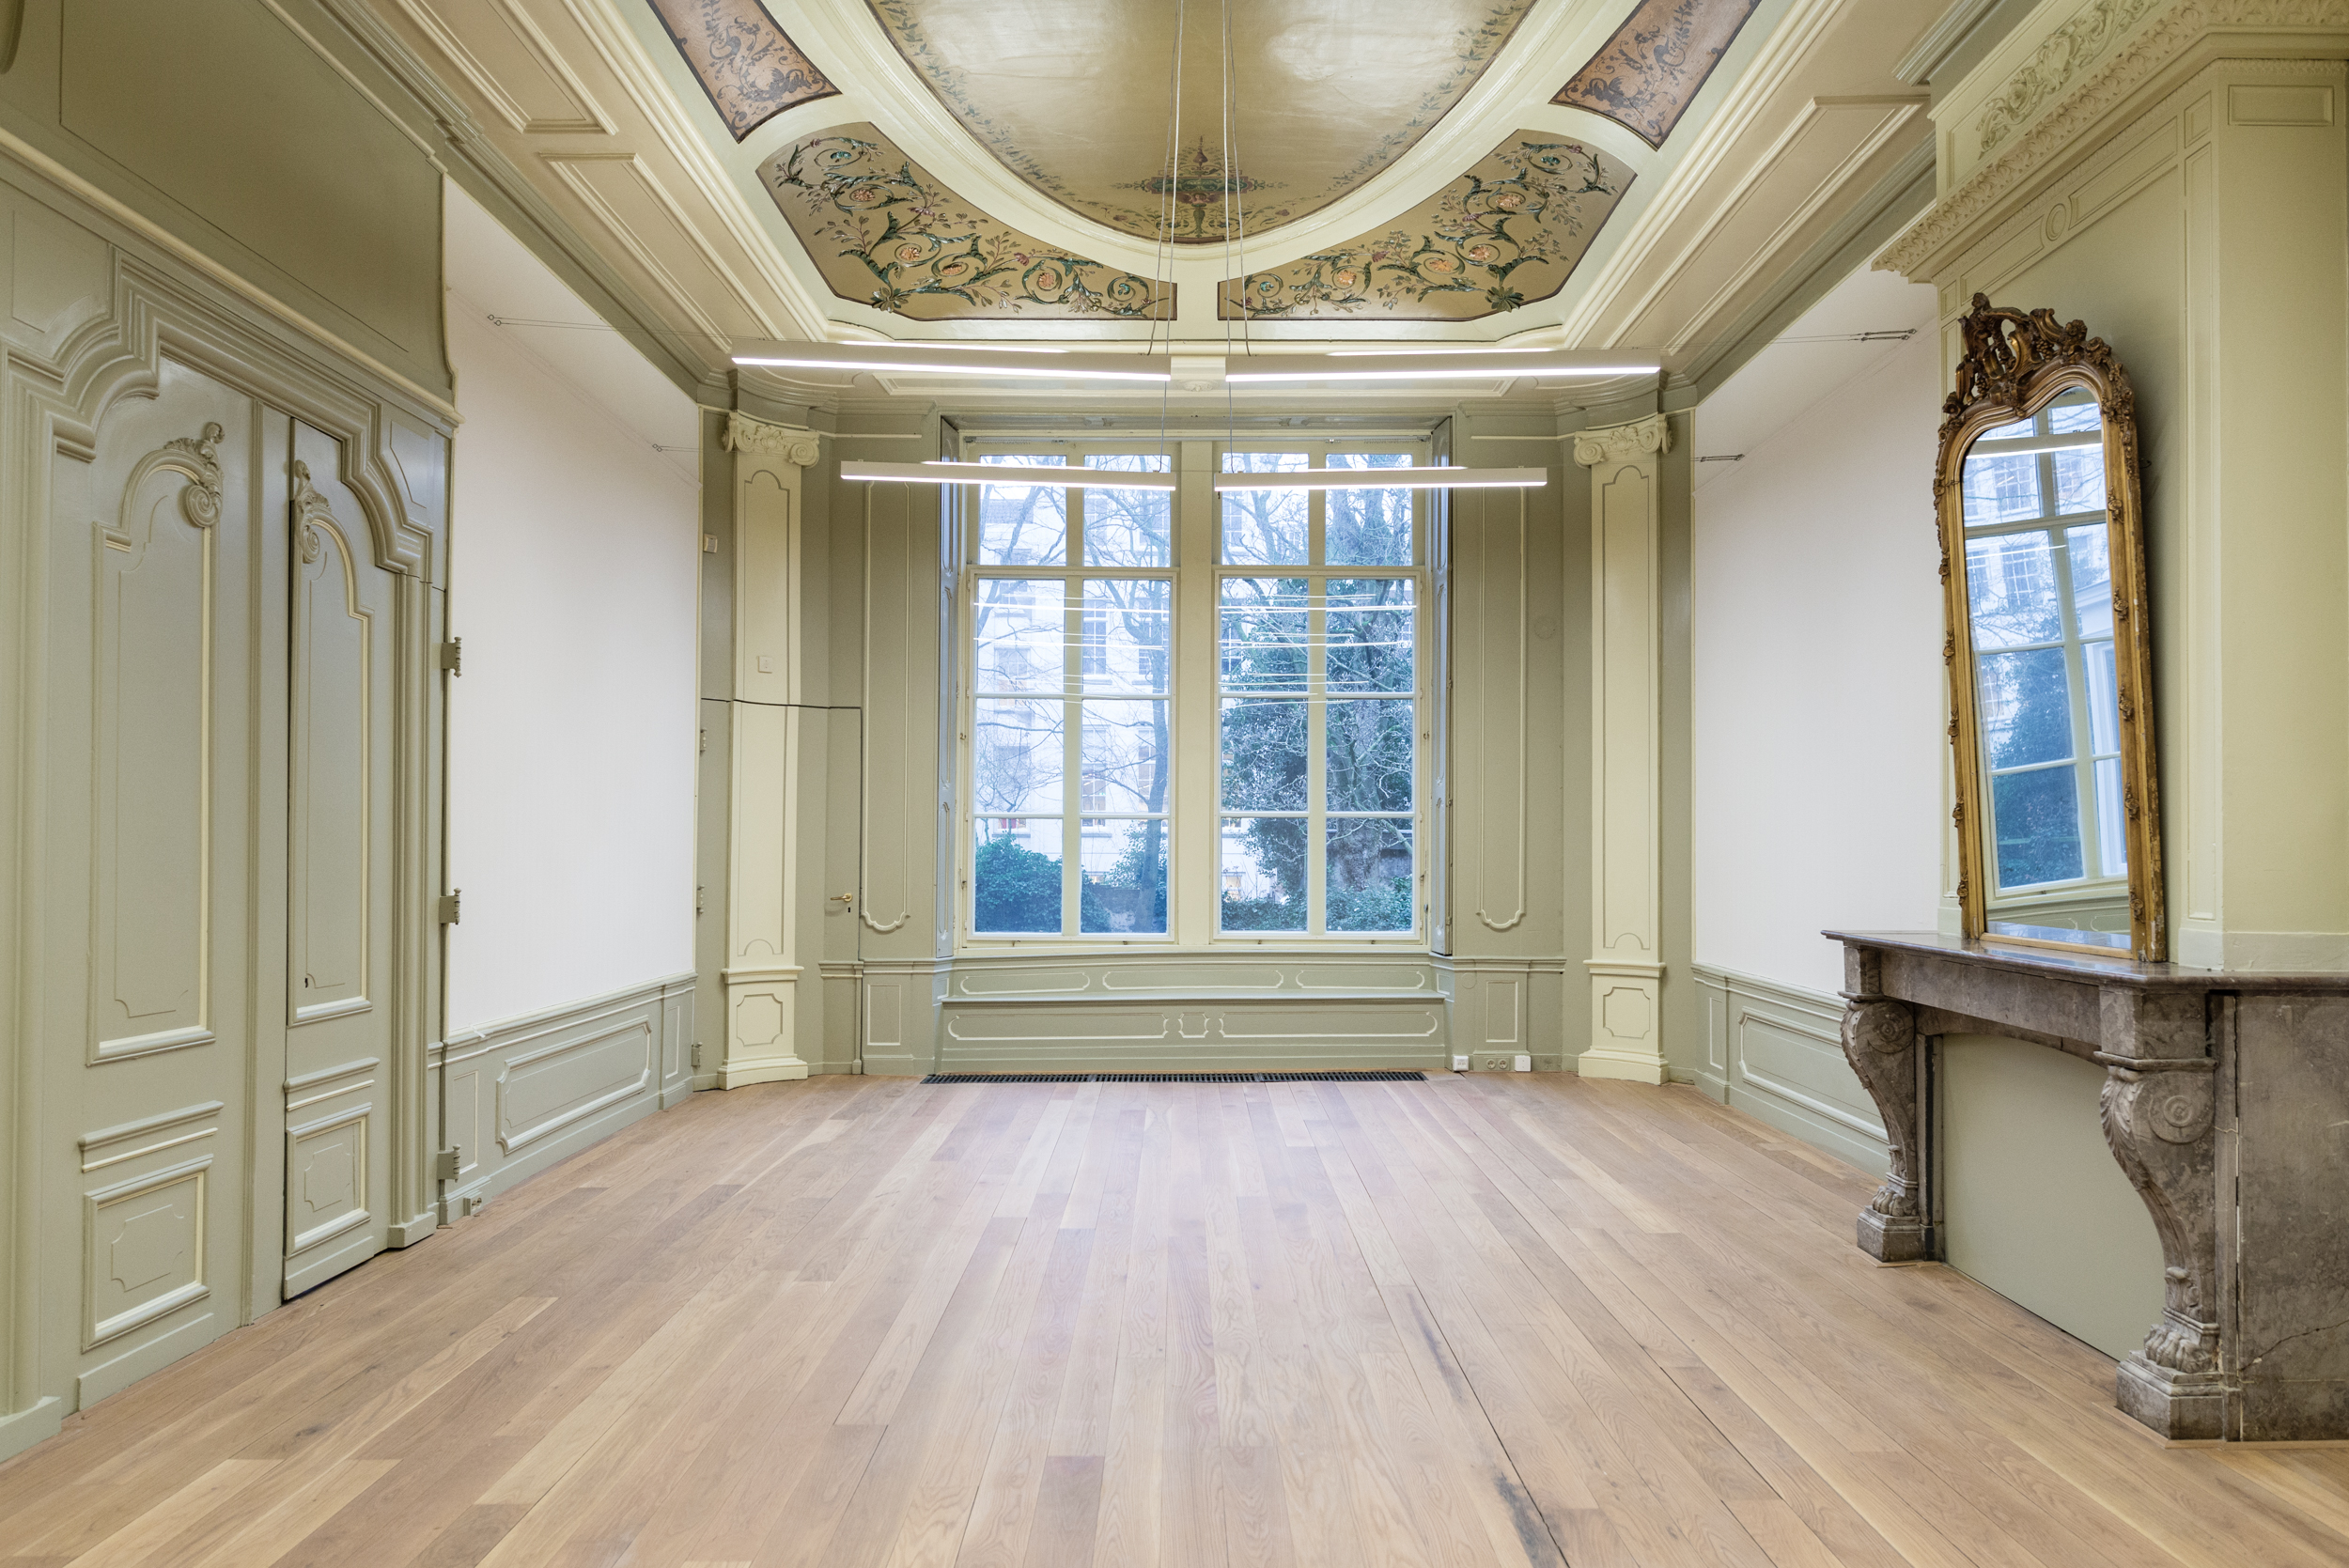 Rent office space Herengracht 168, Amsterdam (4)